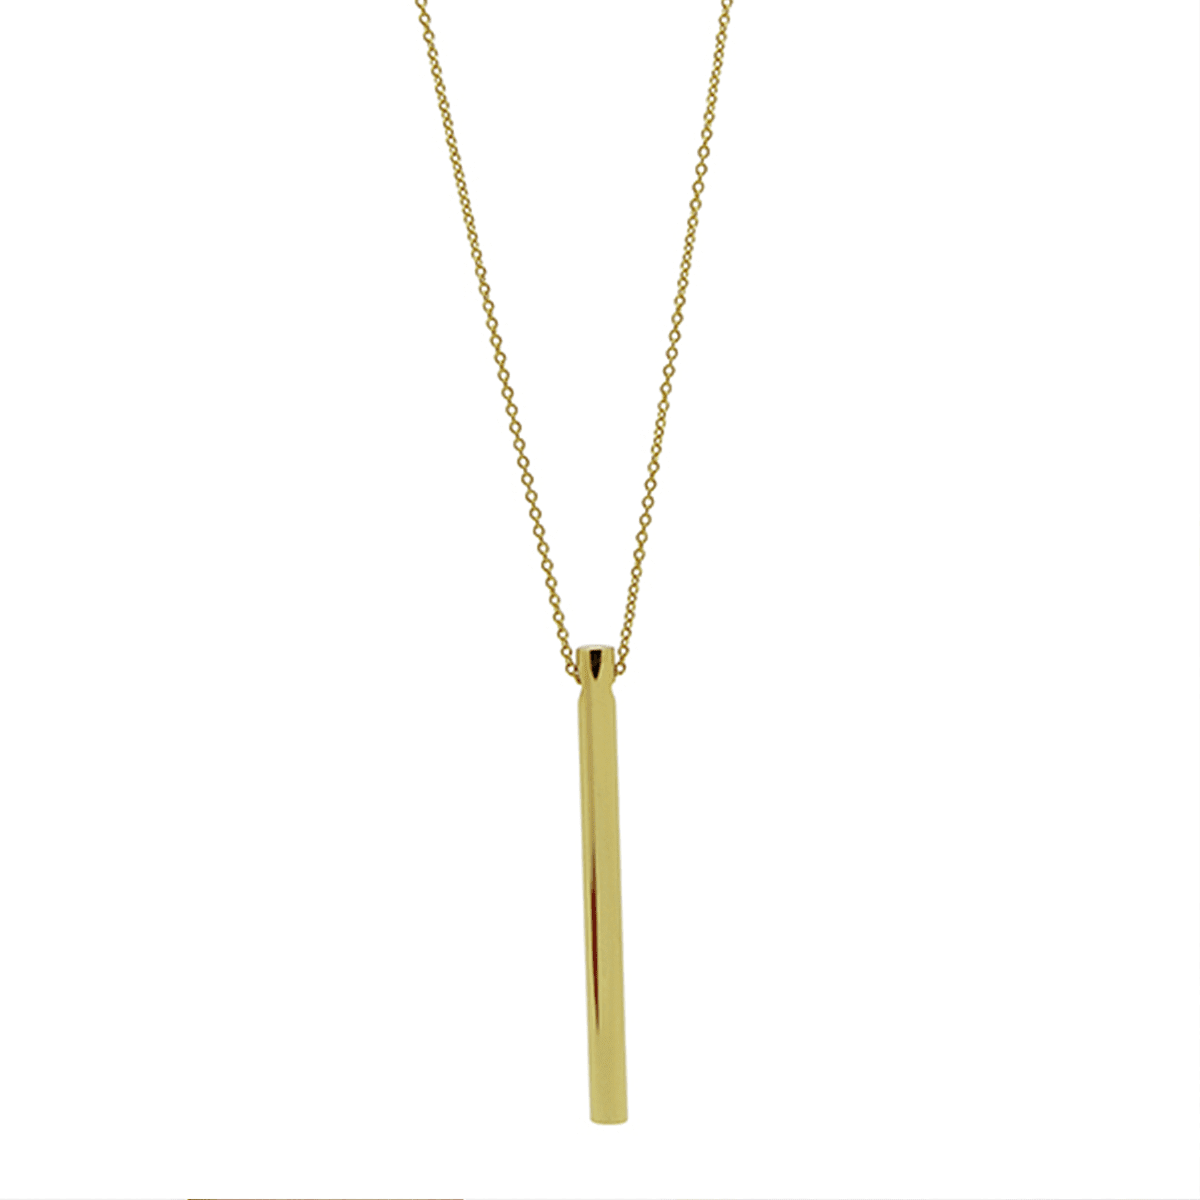 Sleek Cylindrical 18k Gold-Plated Pendant